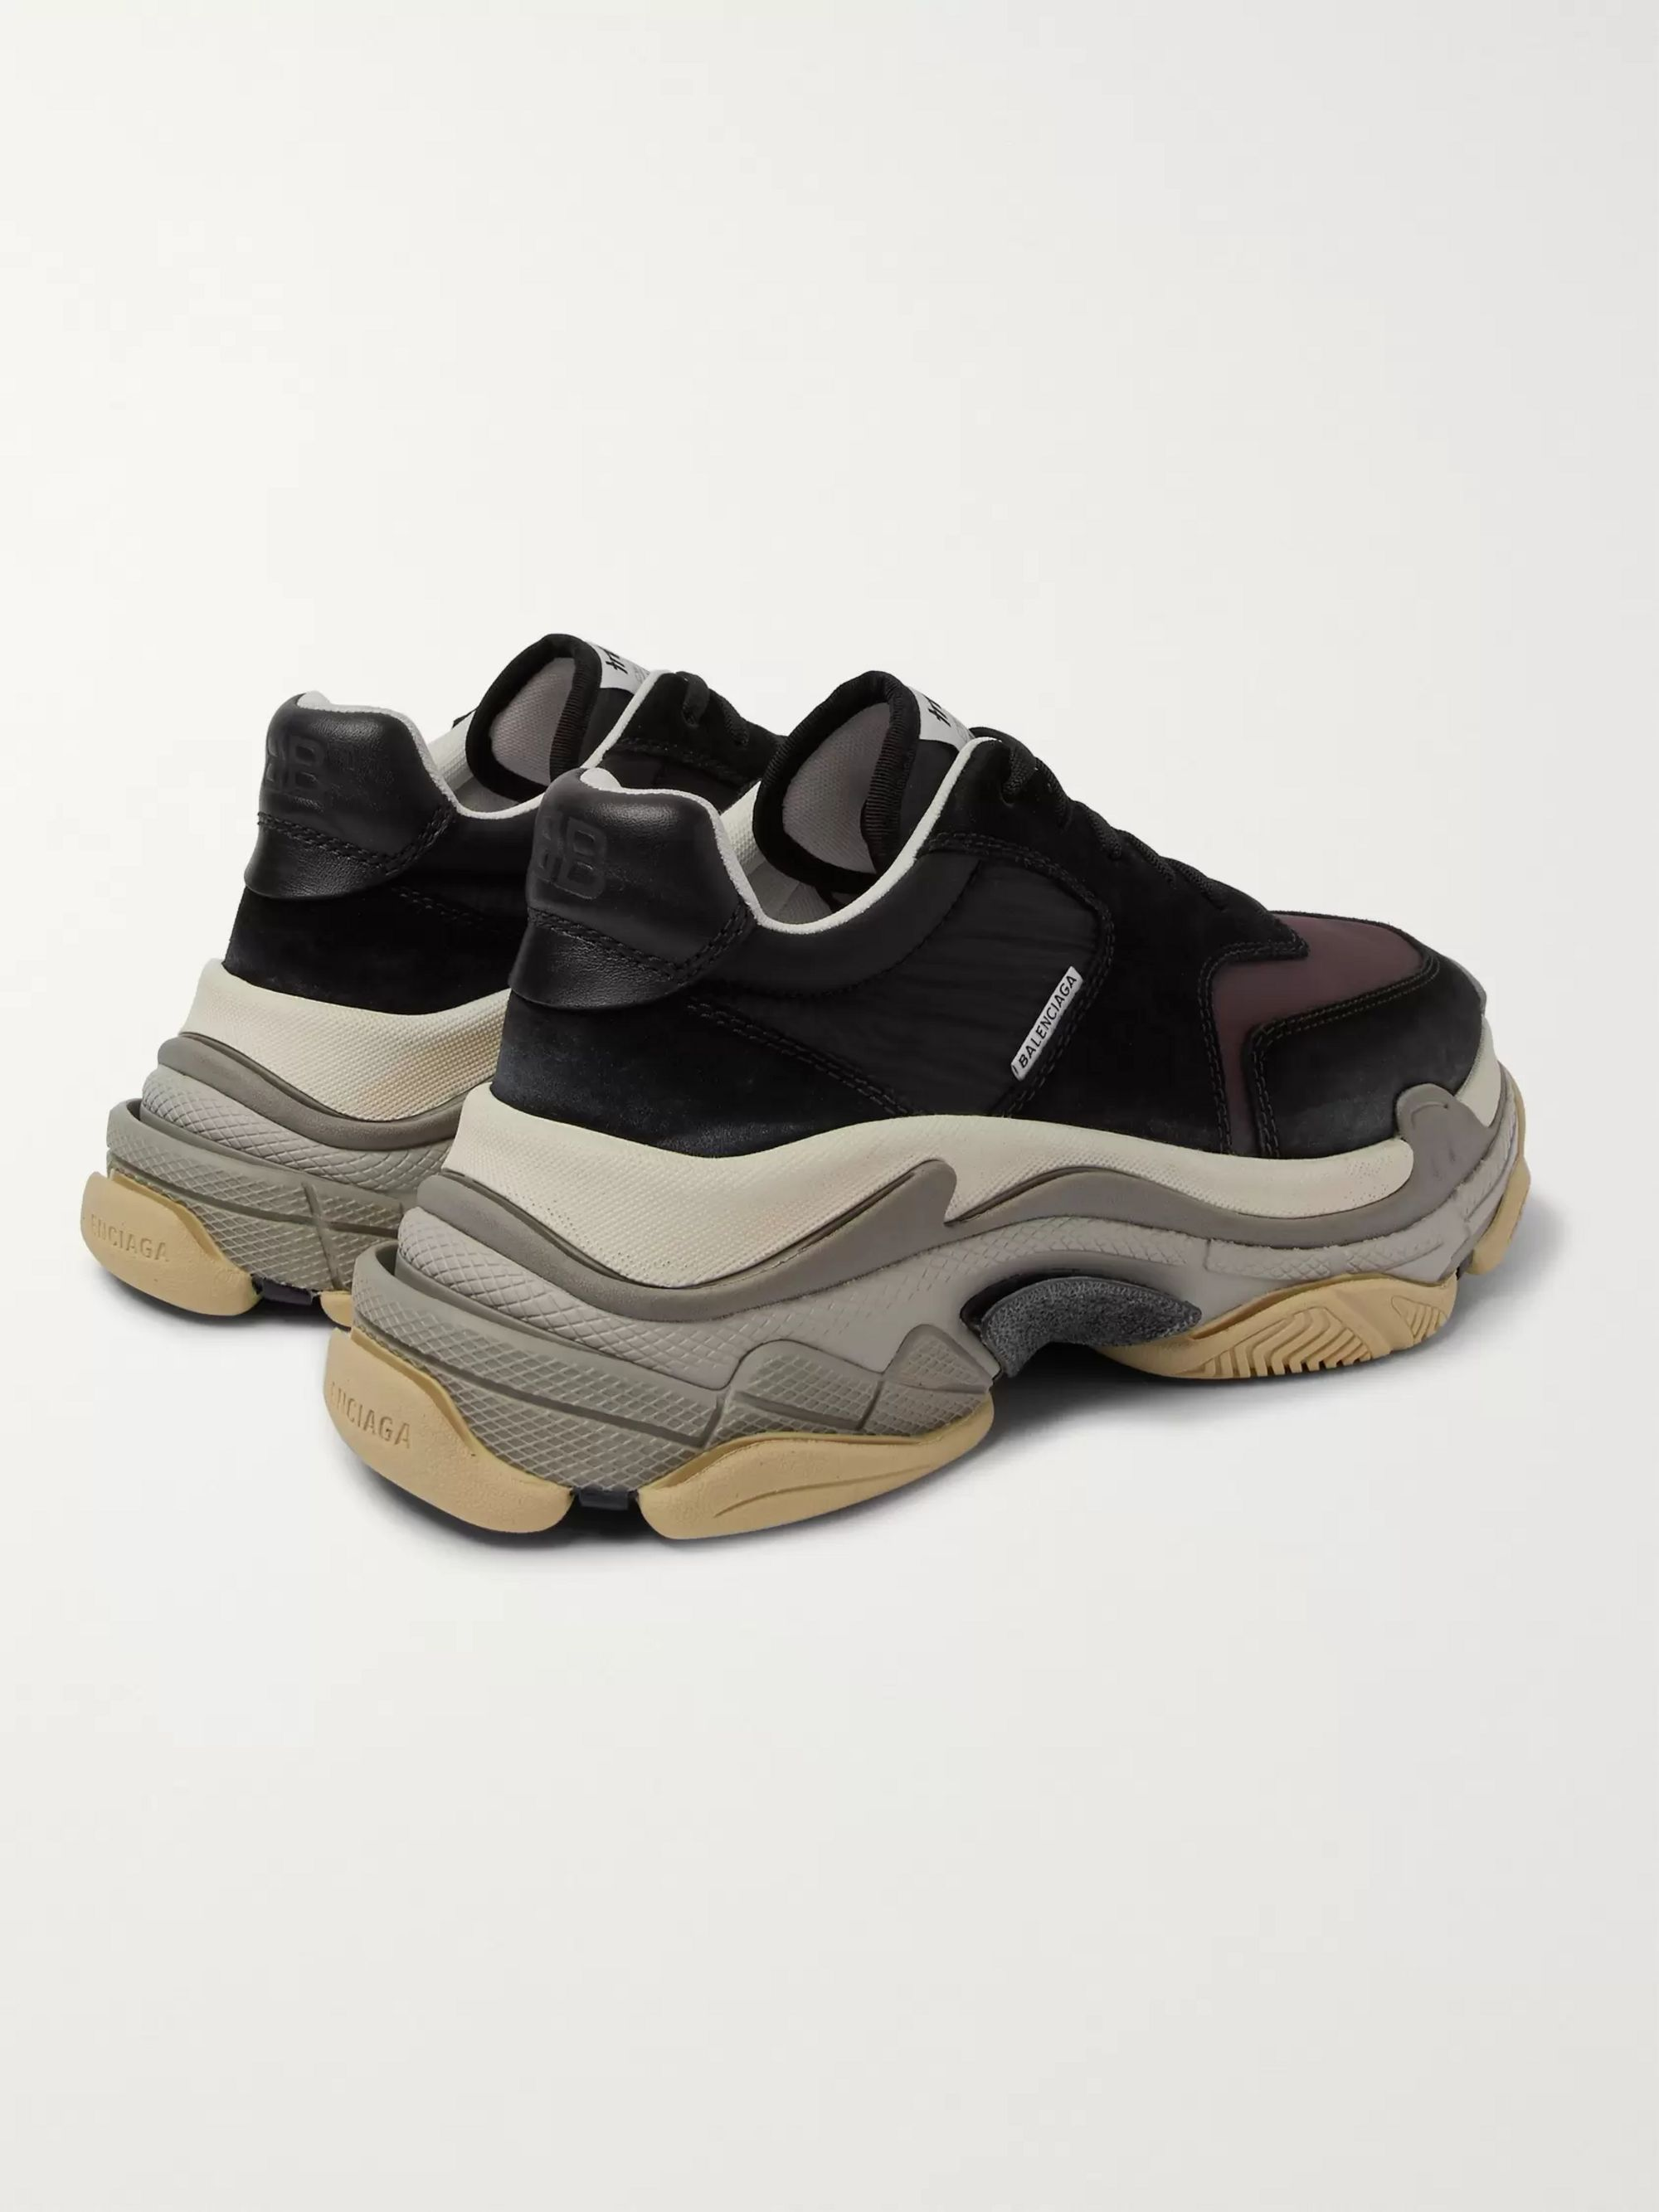 Balenciaga Triple S Nylon, Mesh, Suede and Leather Sneakers